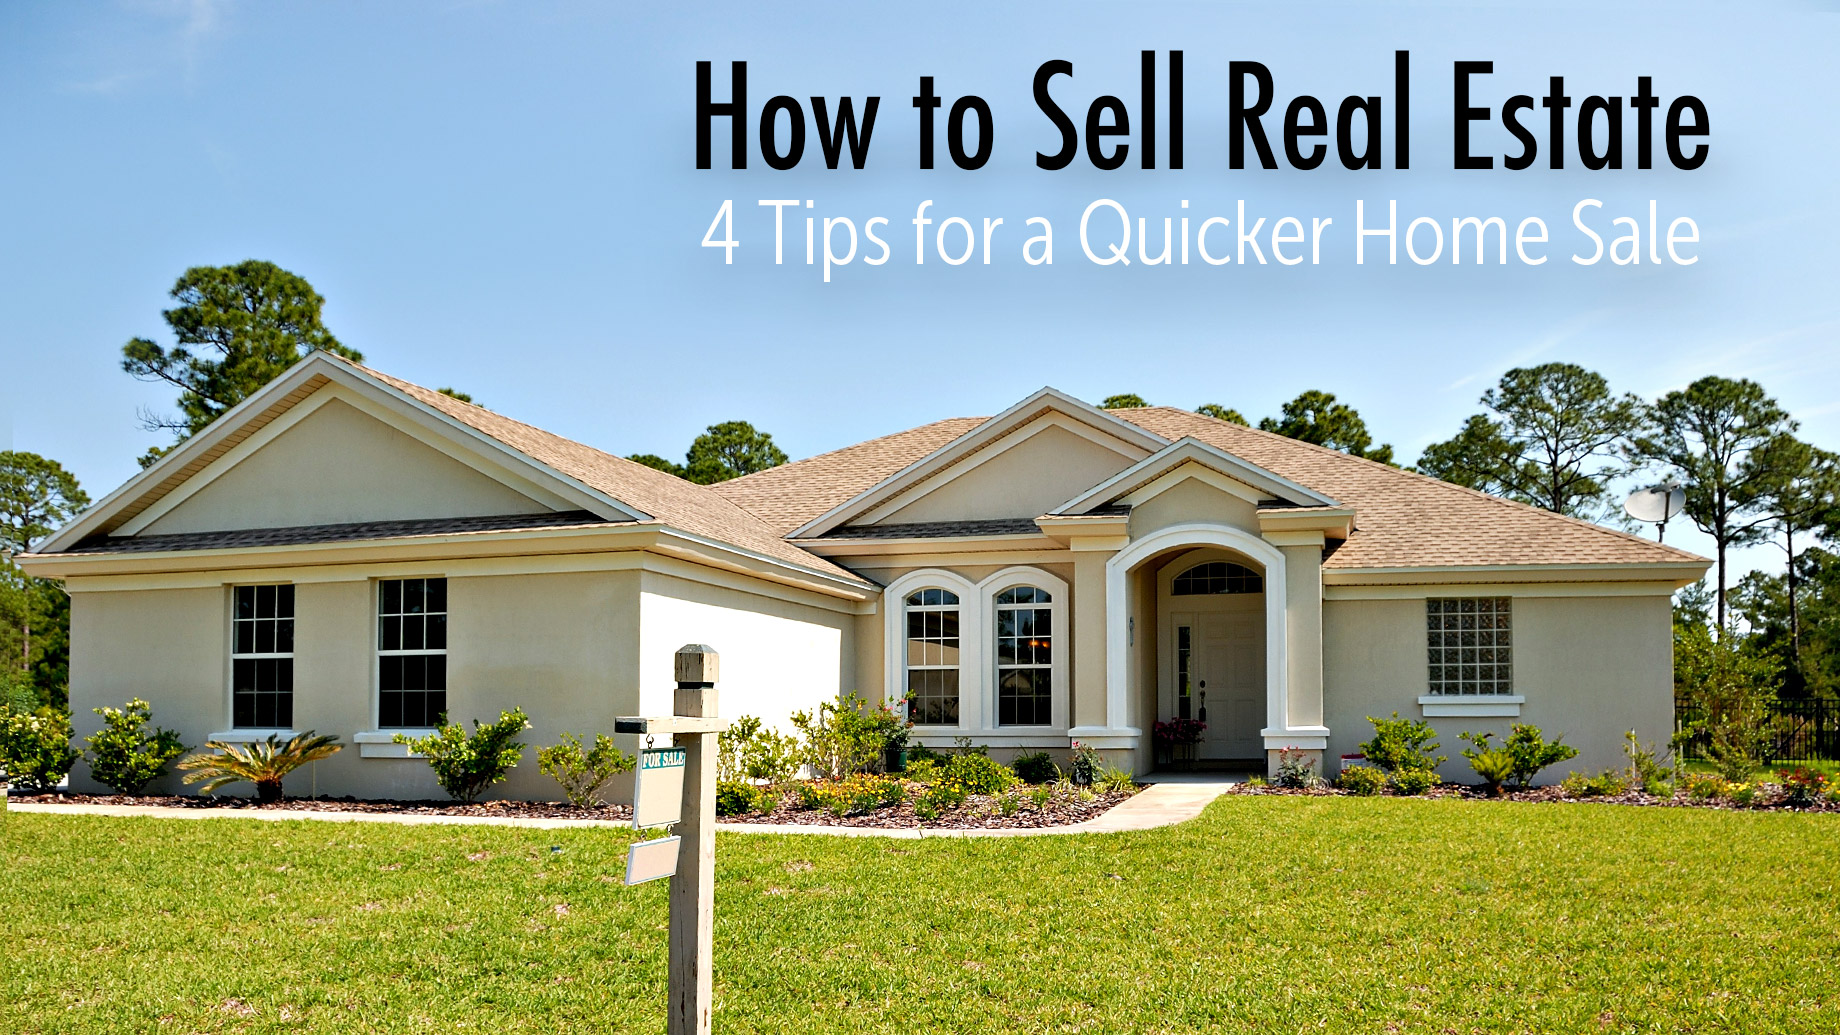 How to Sell Real Estate - 4 Tips for a Quicker Home Sale